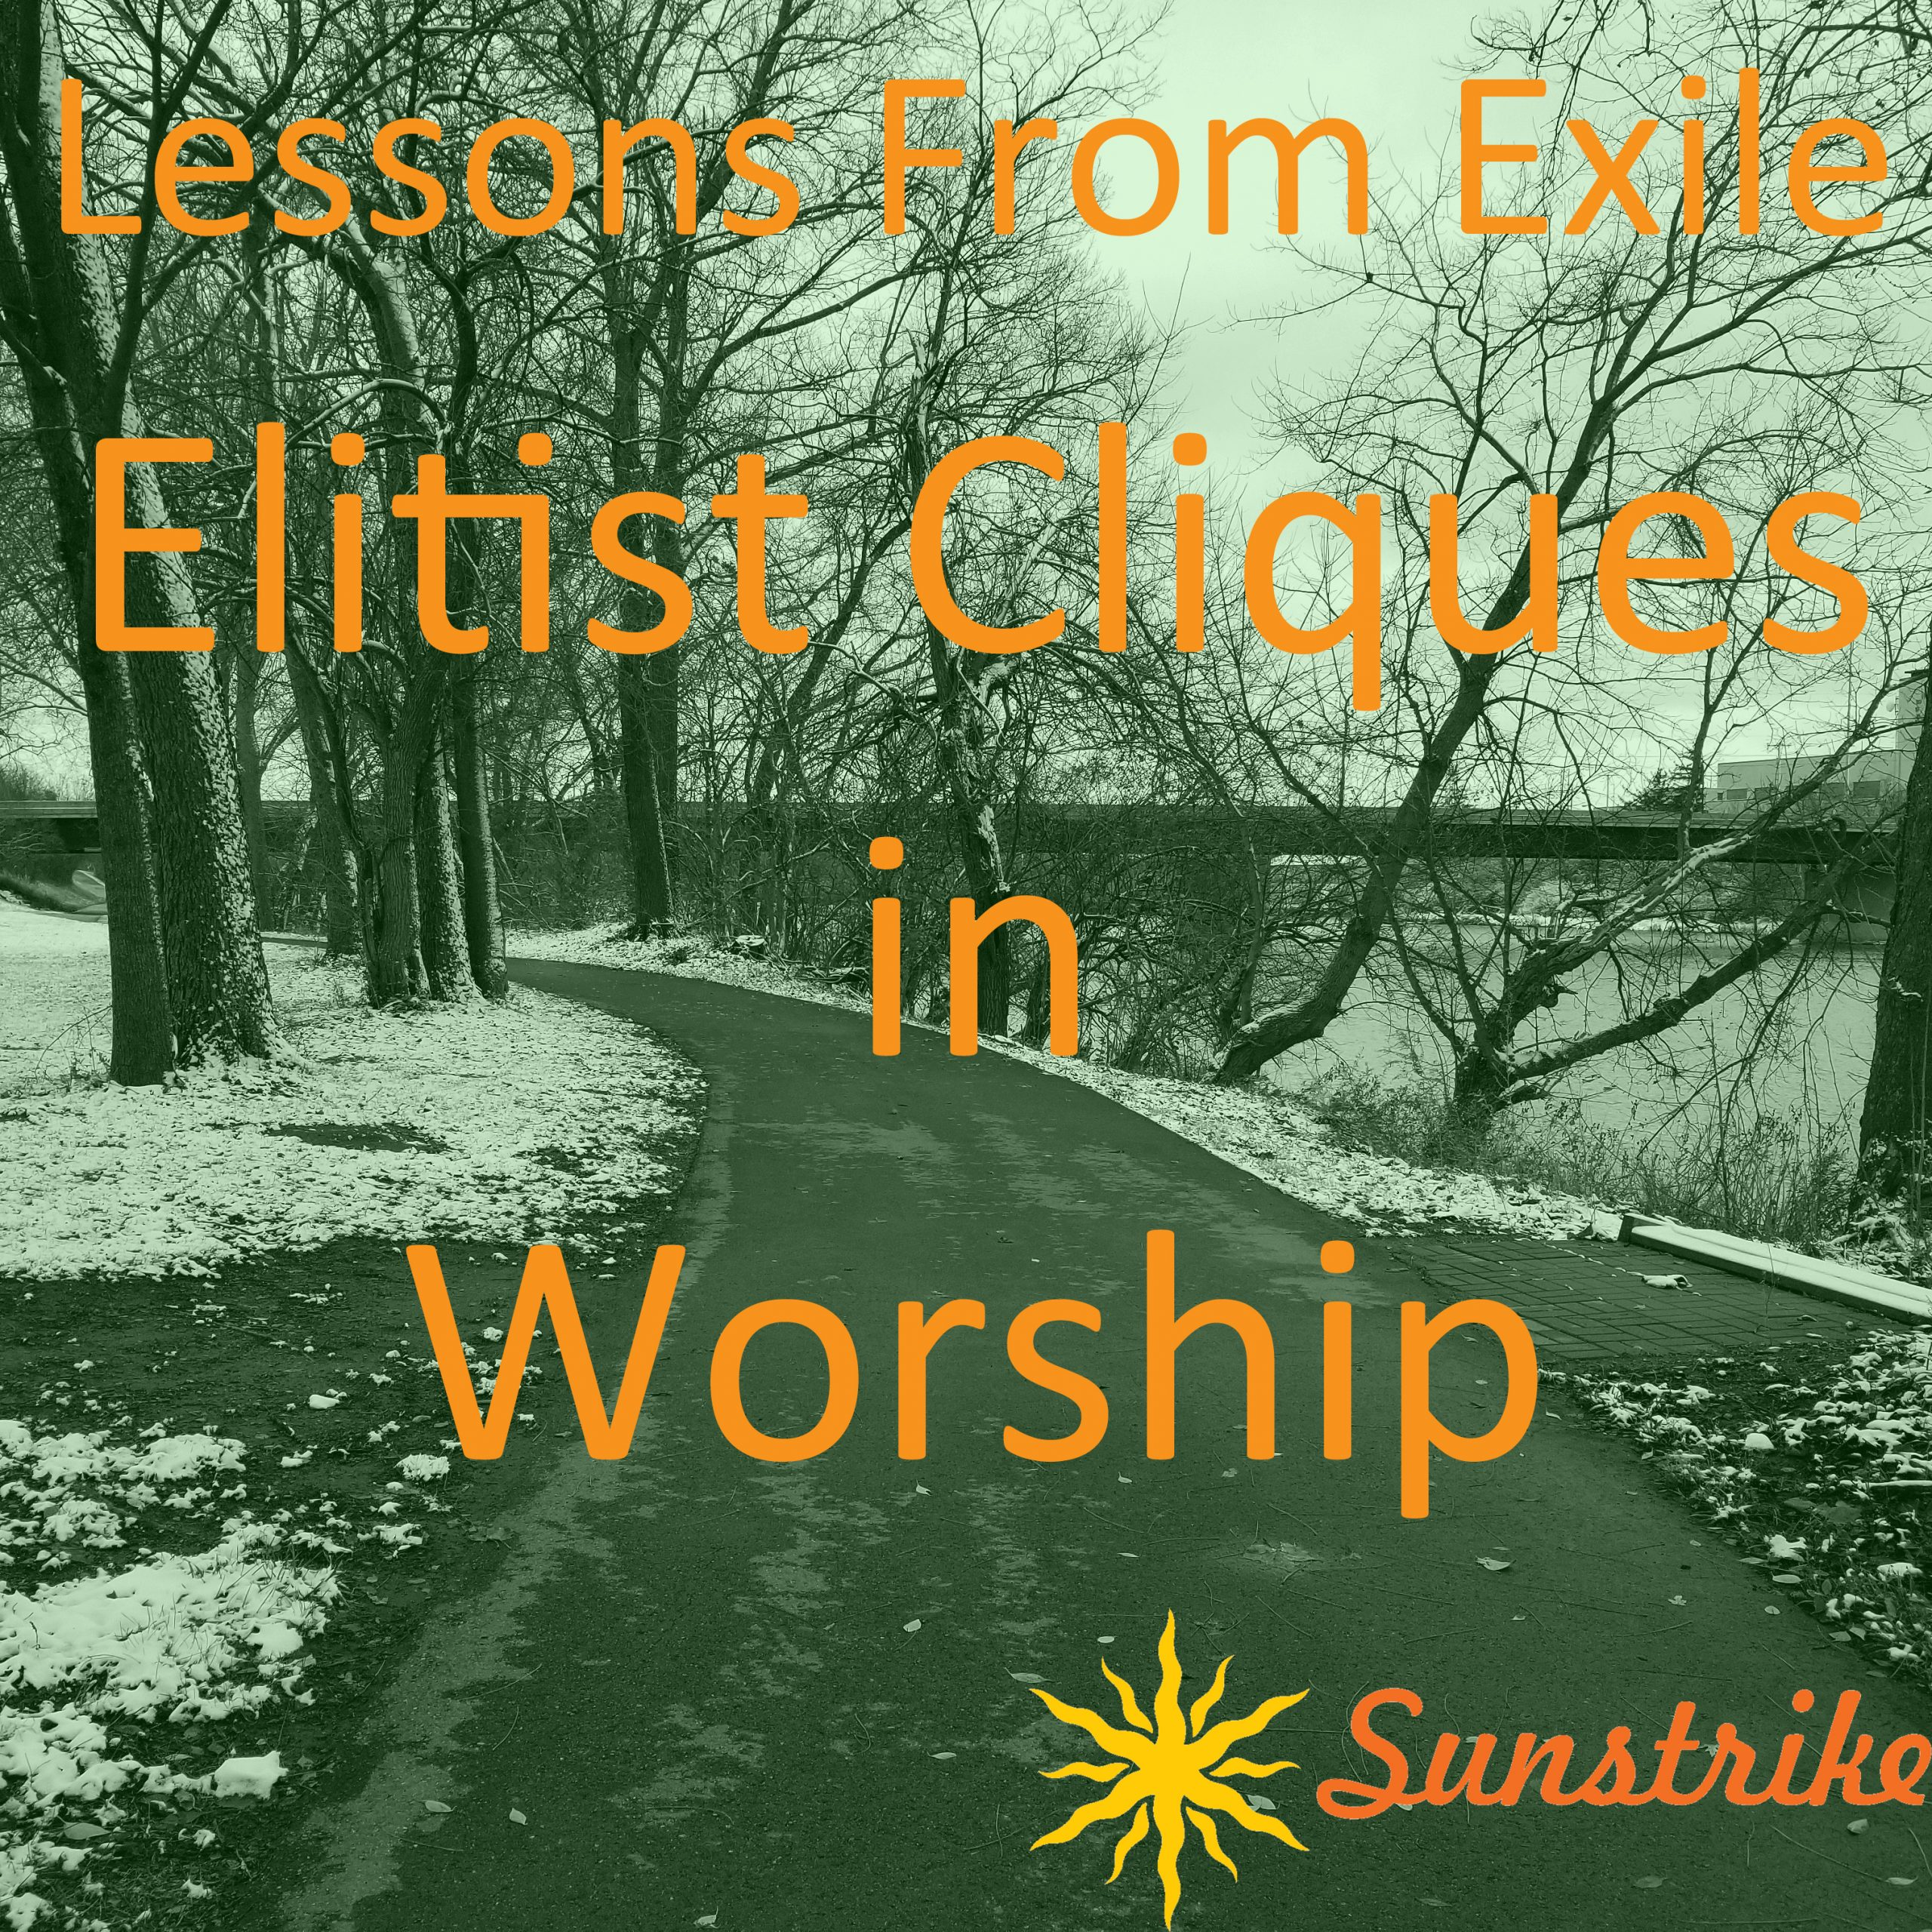 Lessons from Exile #102: Elitist Cliques in Worship